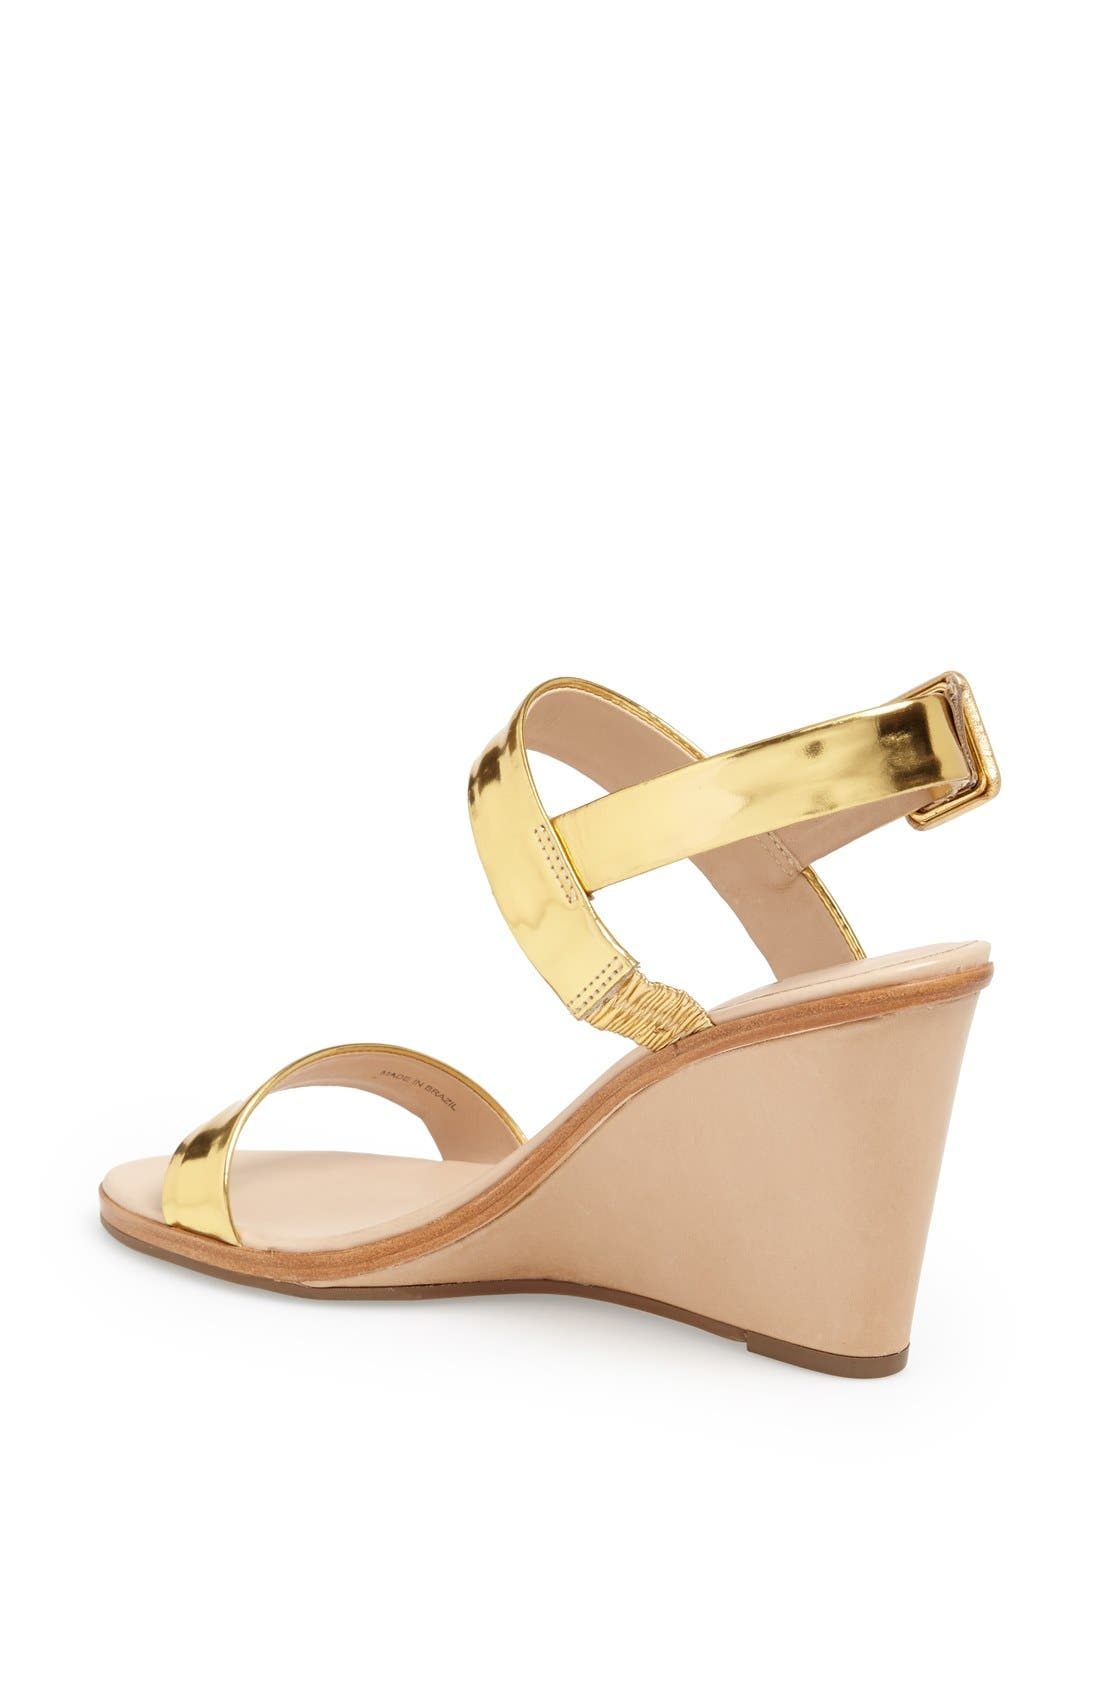 Alternate Image 2  - kate spade new york 'nice' sandal (Women)